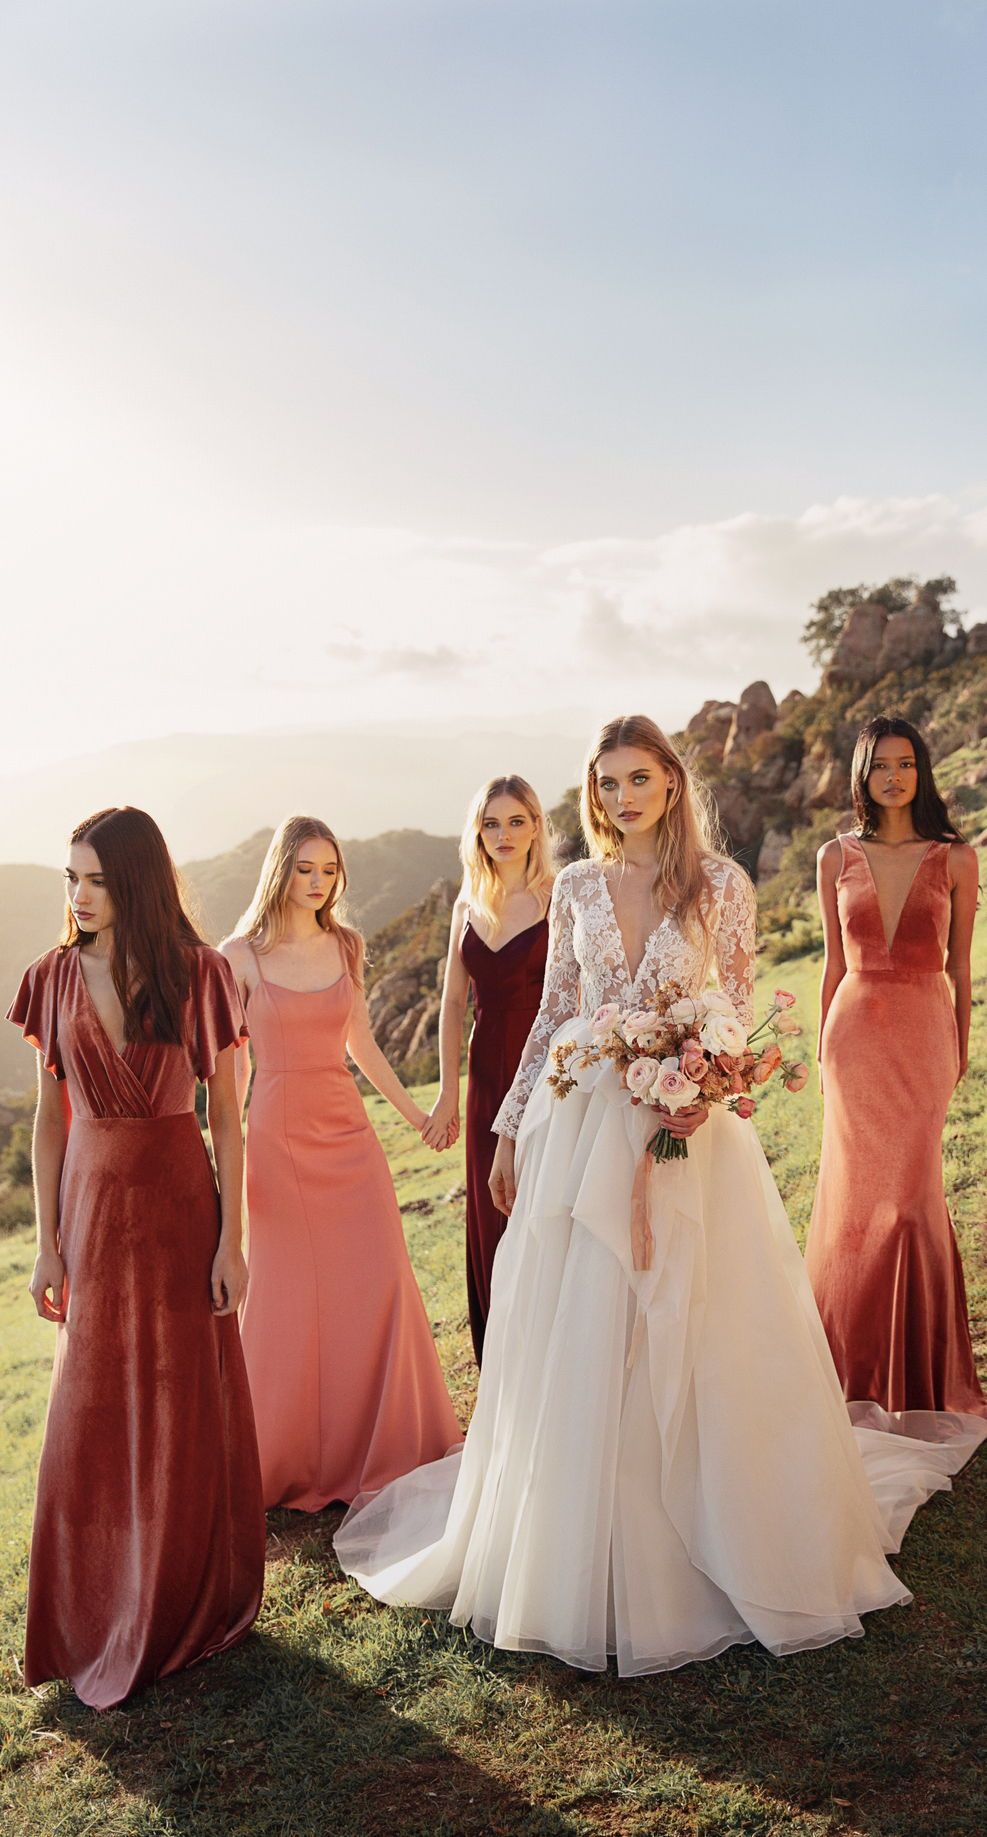 Shop Wedding Dresses, Bridesmaids, Bridal Gowns, Robes, and Formal Guests